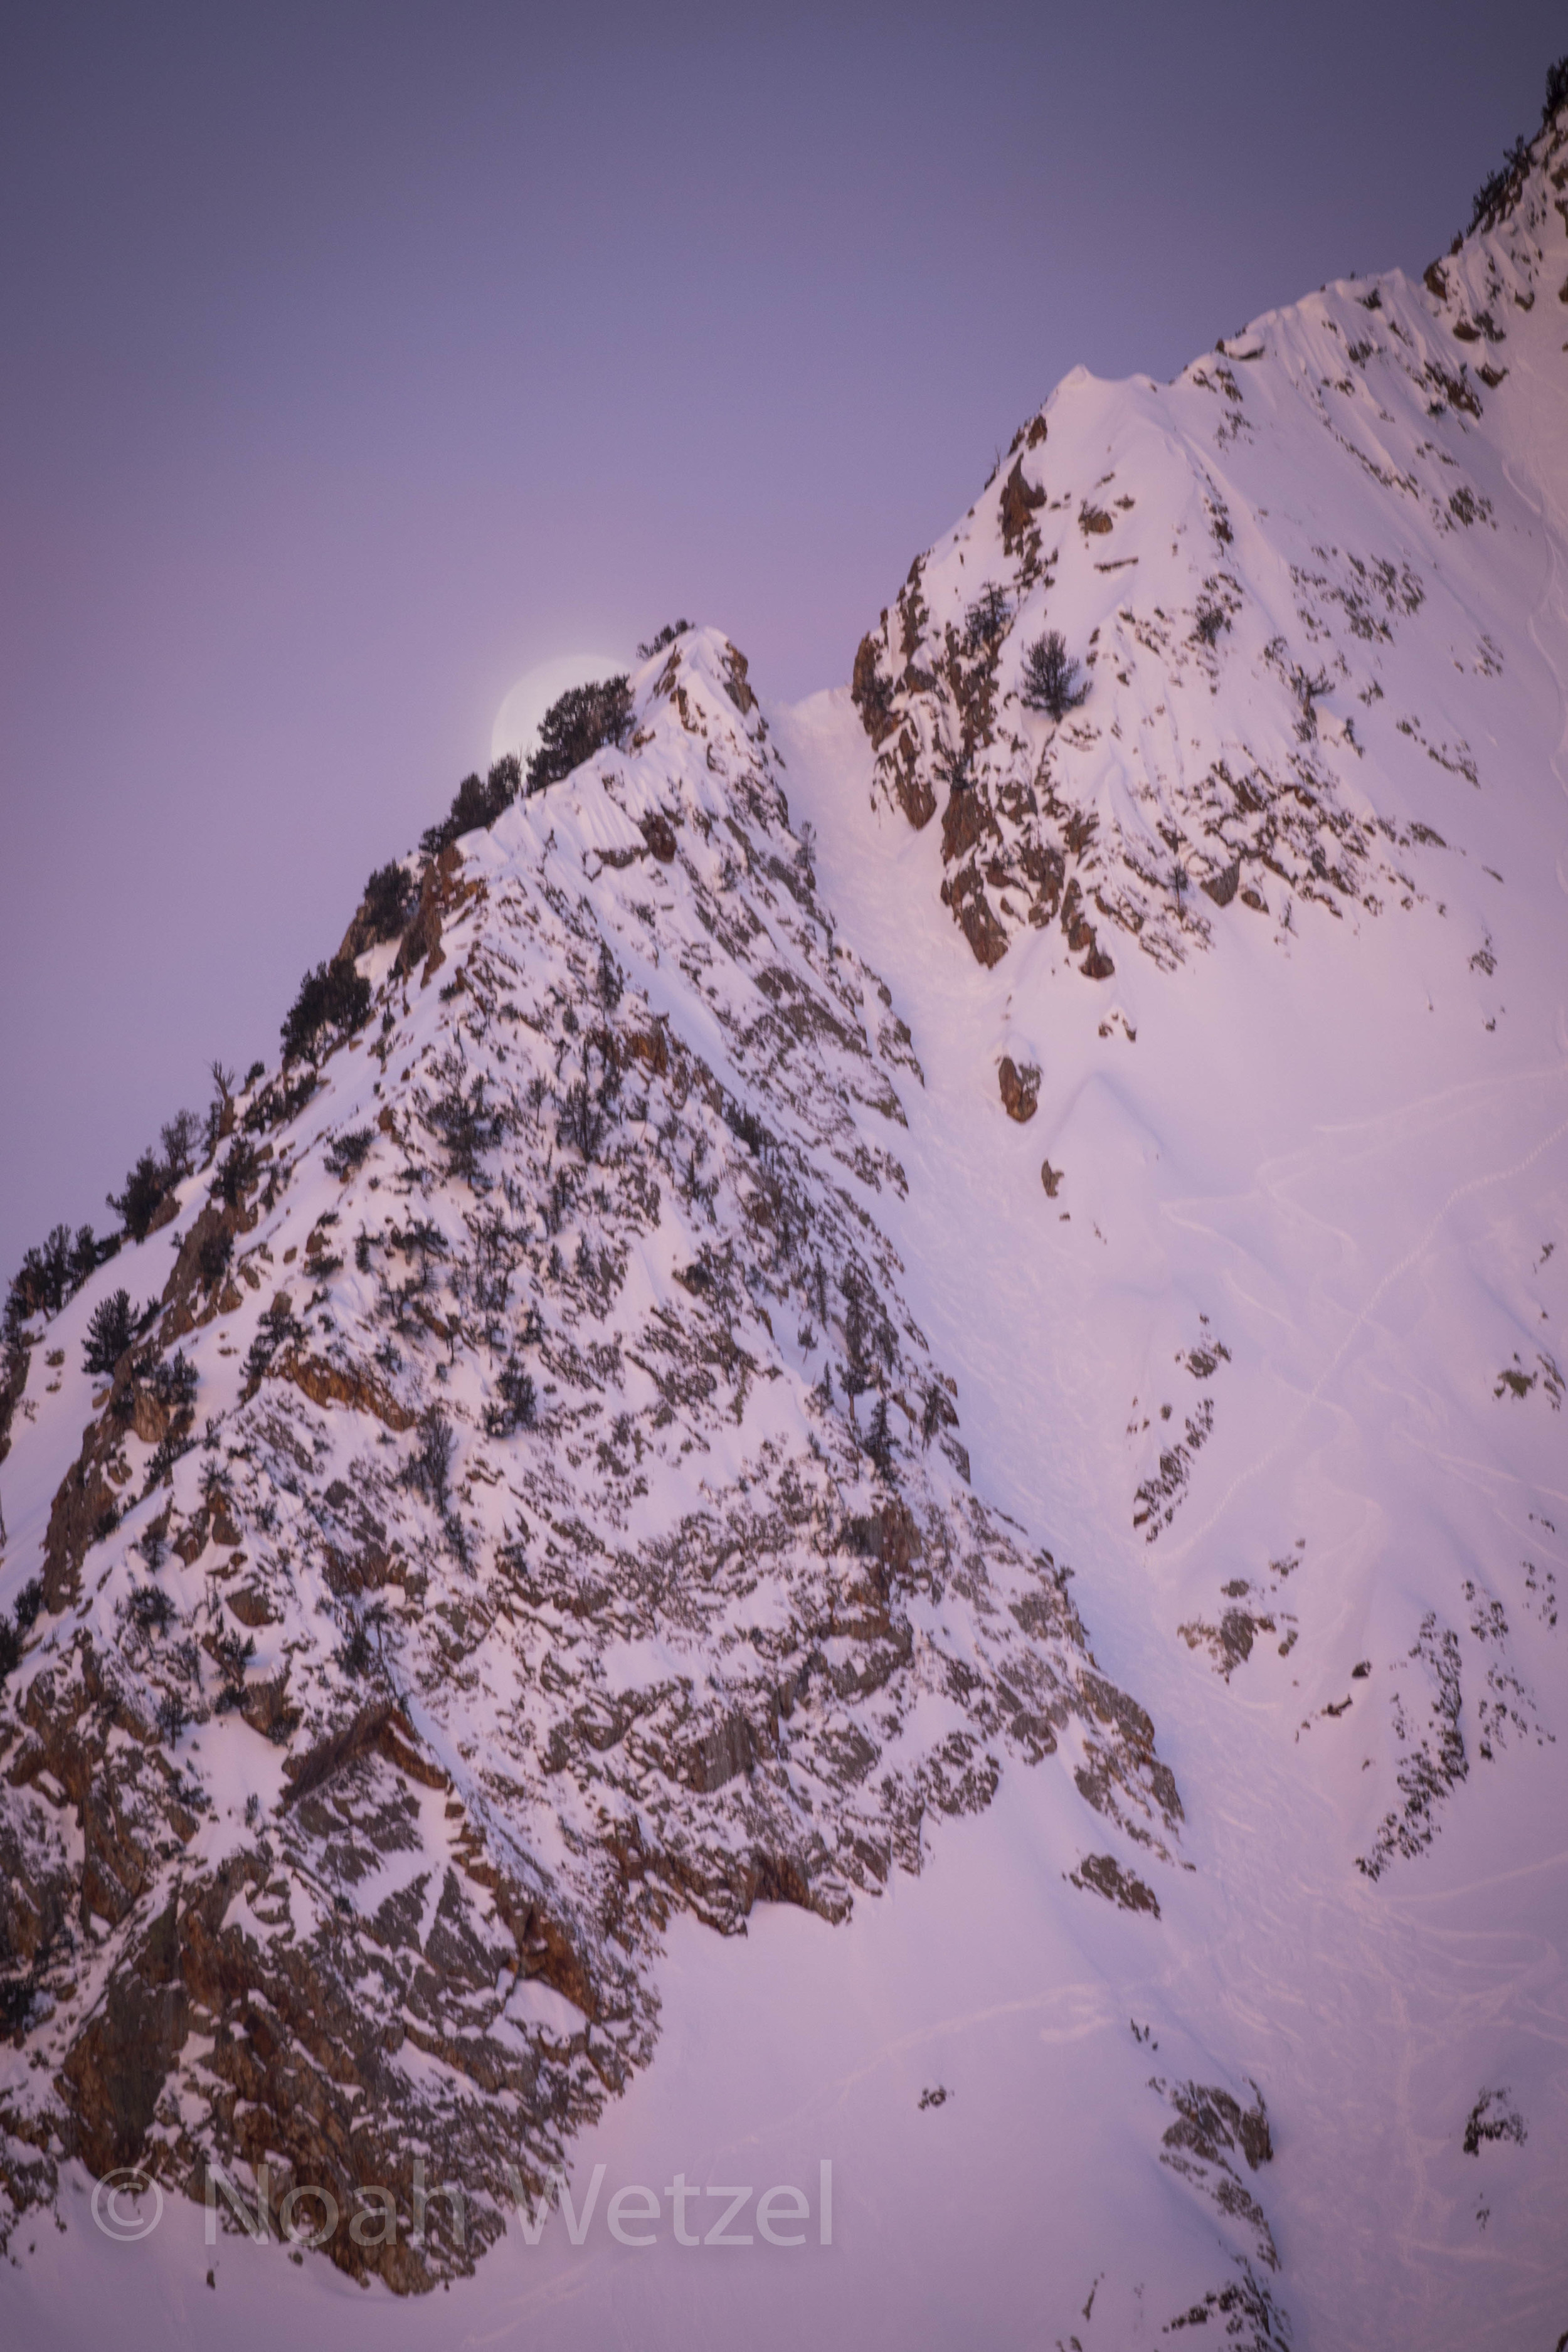 Sunrise with the Moon setting behind Suicide Chute on the morning of Day 2. Ski City Shootout. Snowbird, Utah.